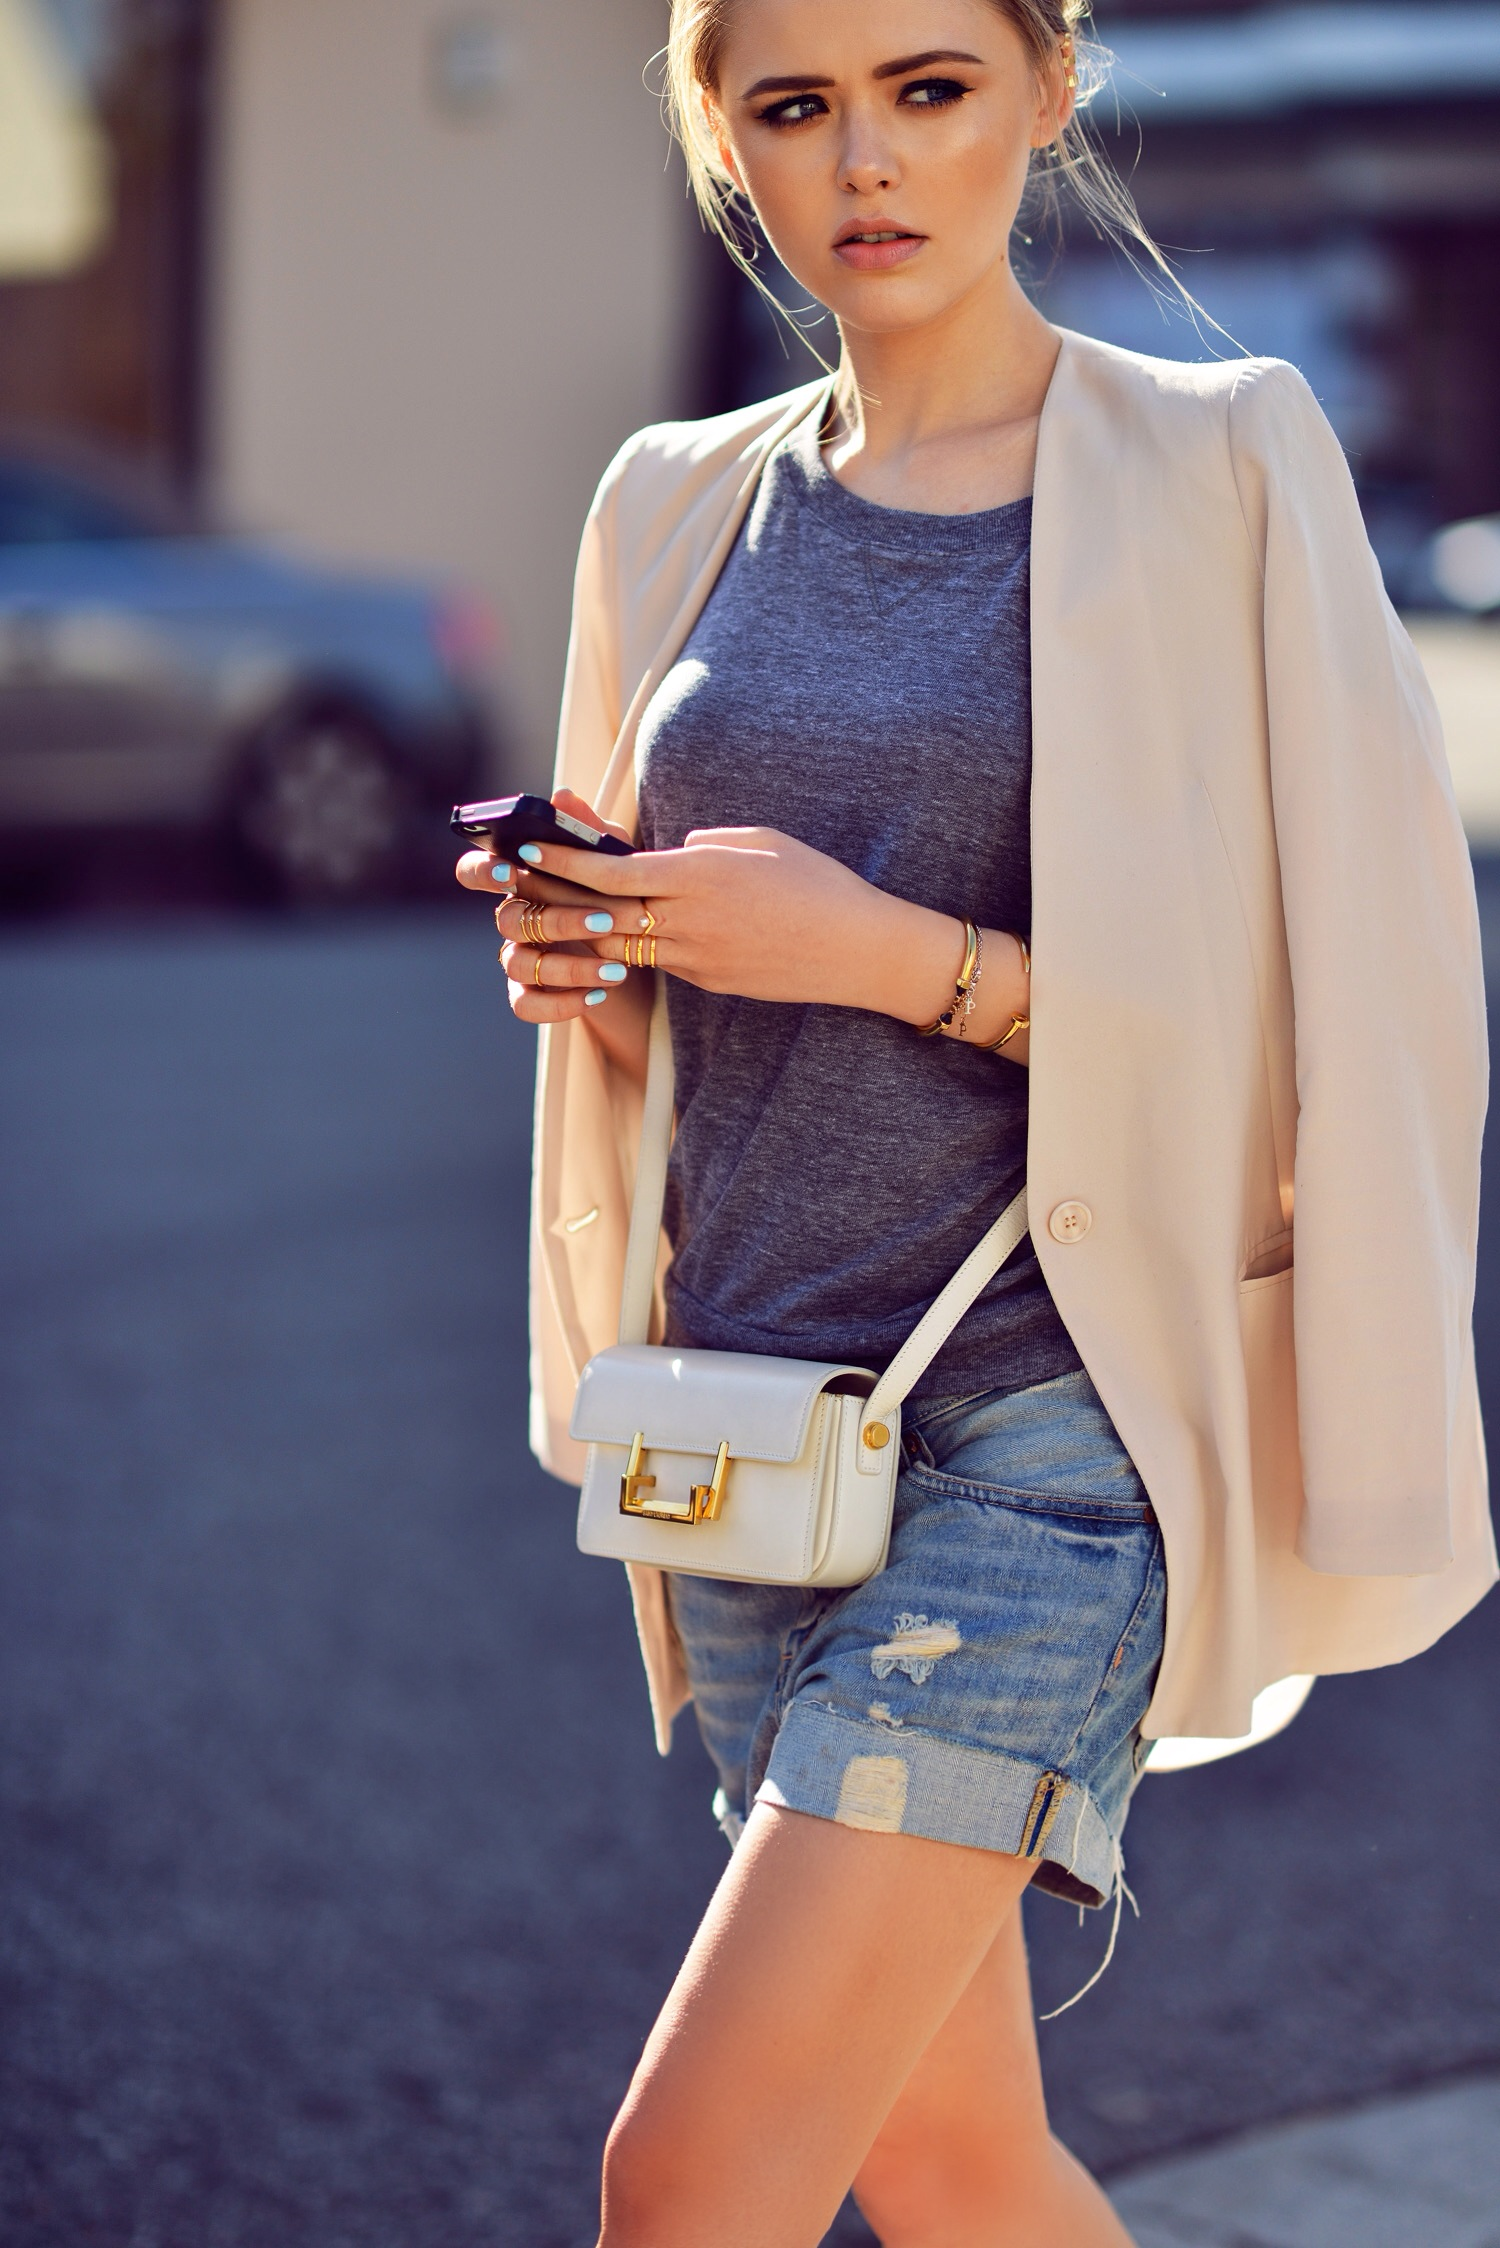 Kristina Bazan Wearing Top From Nations, Blazer From Minusey, Michael Kors Shoes And Distressed Boyfriend Denim Shorts From H&M Bag From Saint Laurent